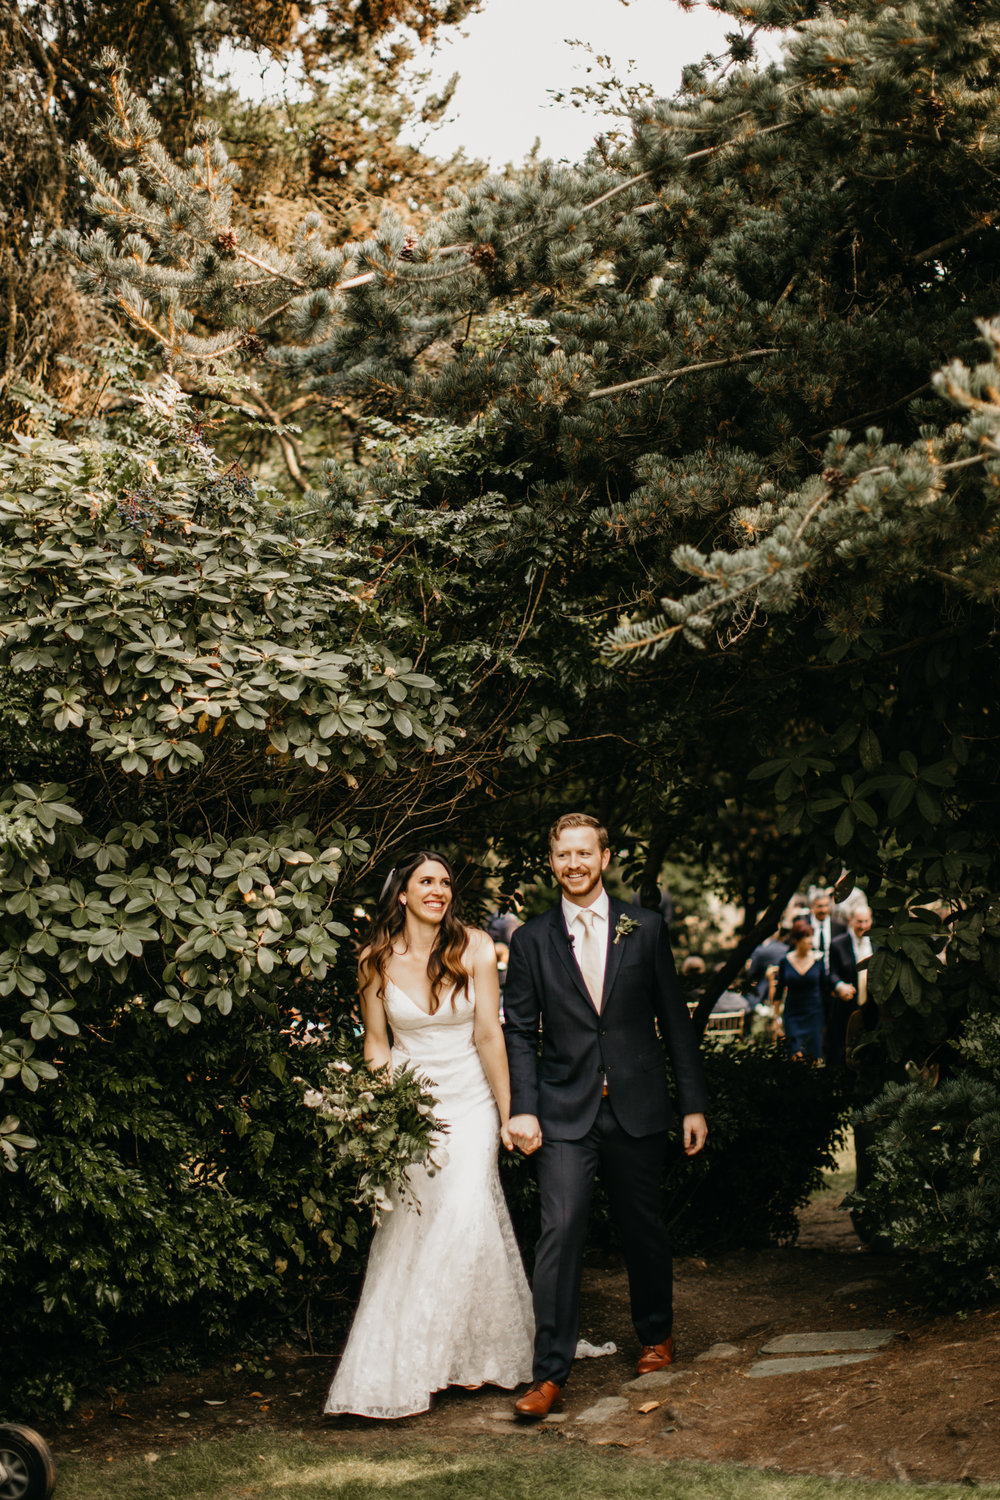 Max&SamPhoto_Seattle Wedding Photographer_Bellevue Robinswood House_093.jpg